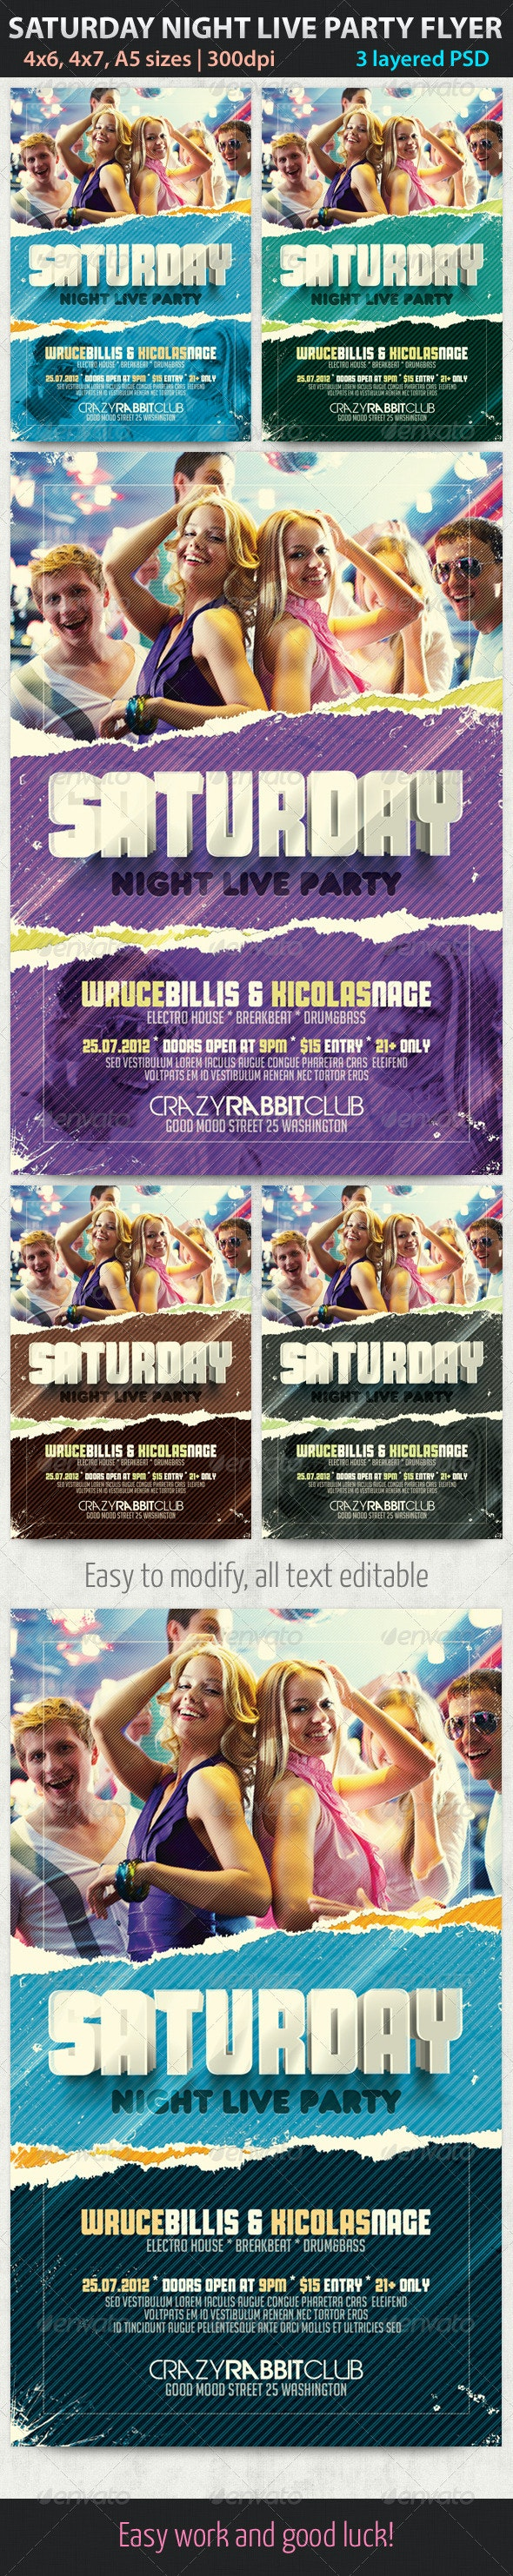 Saturday Night Live Party Flyer - Clubs & Parties Events